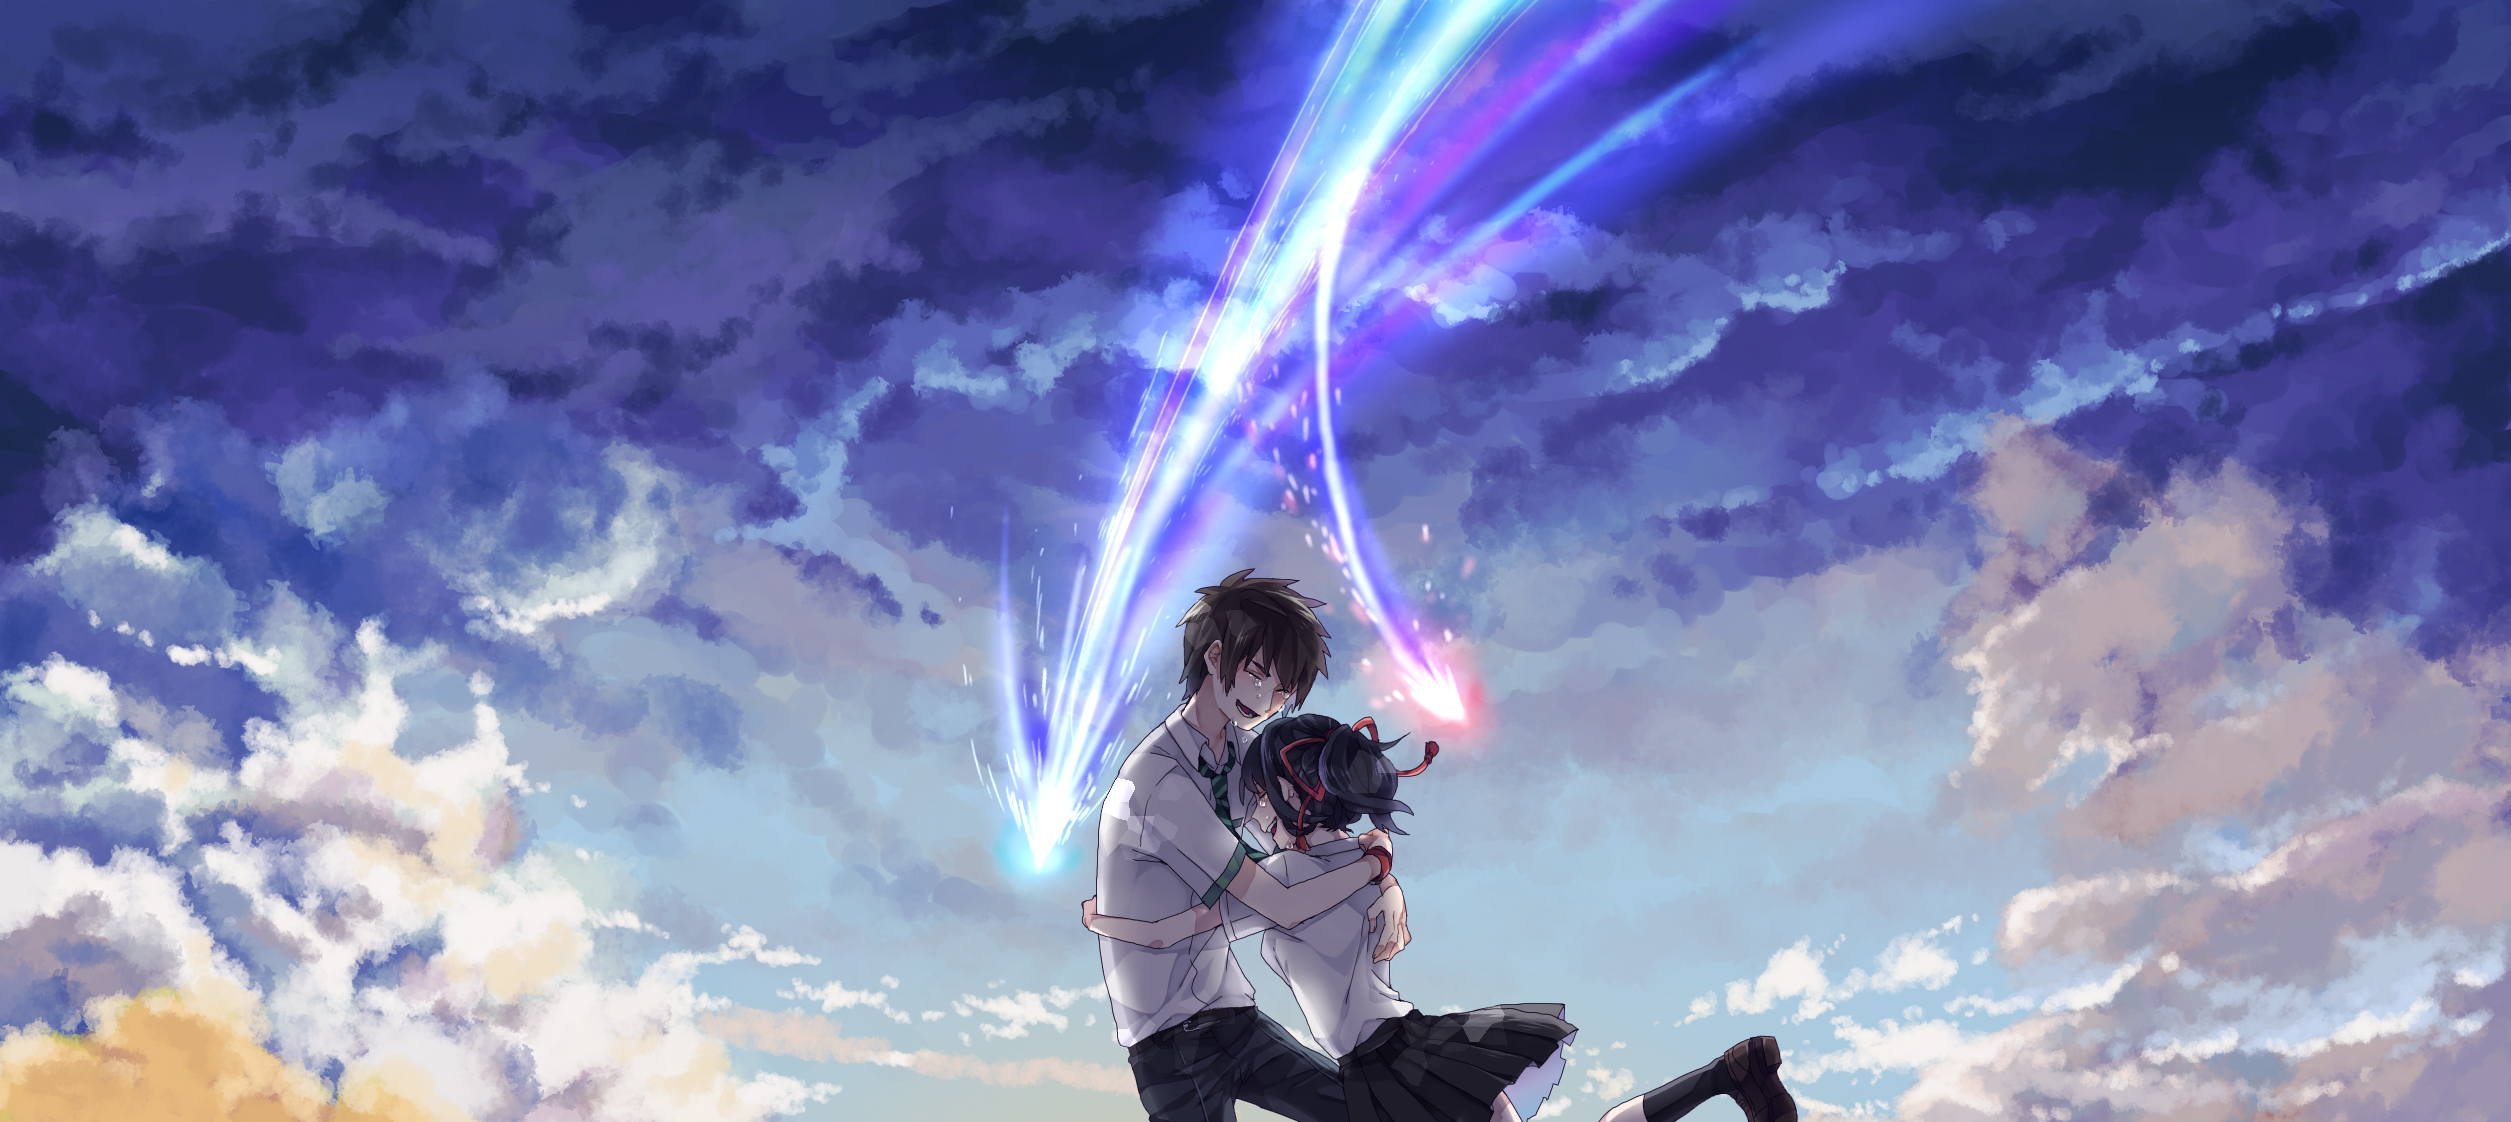 Your Name Hd Wallpaper Background Image 2511x1122 Id